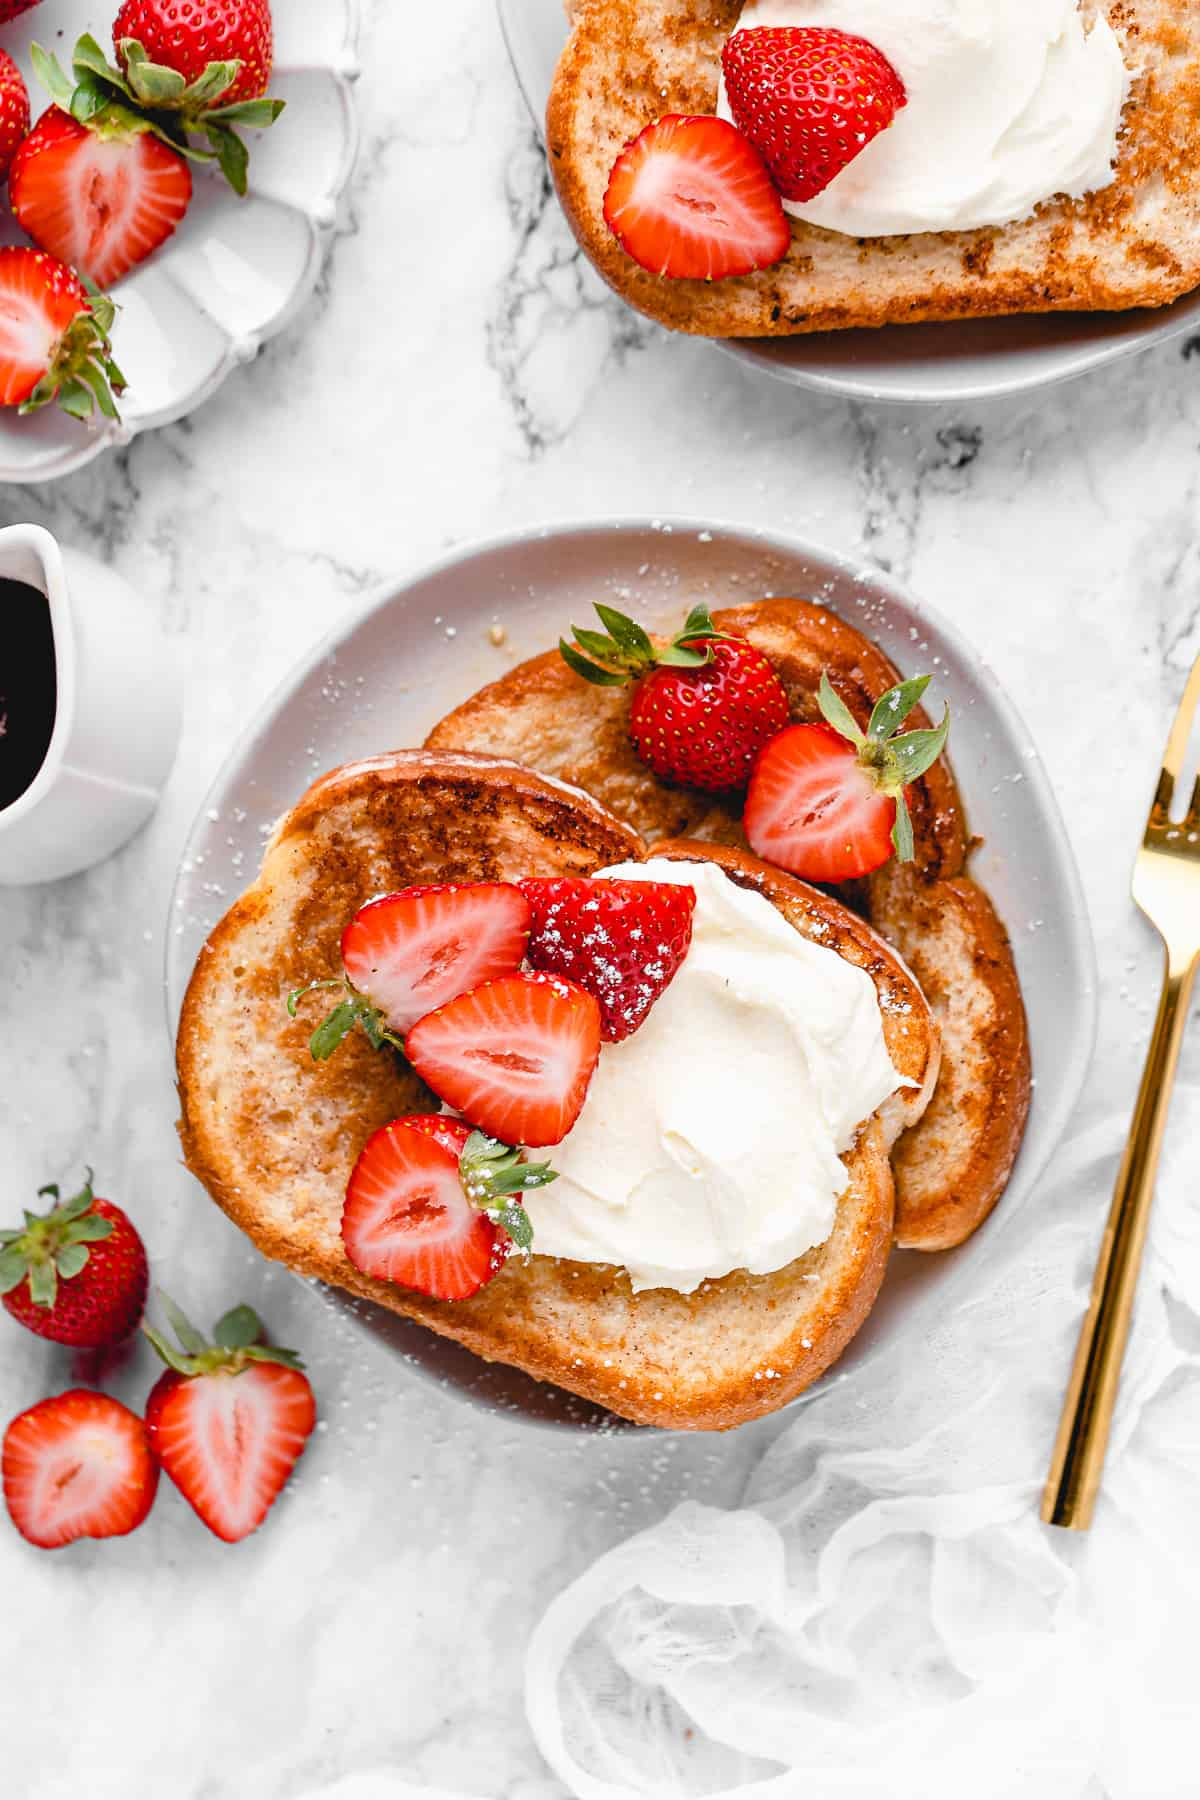 2 slices of french toast with strawberries.